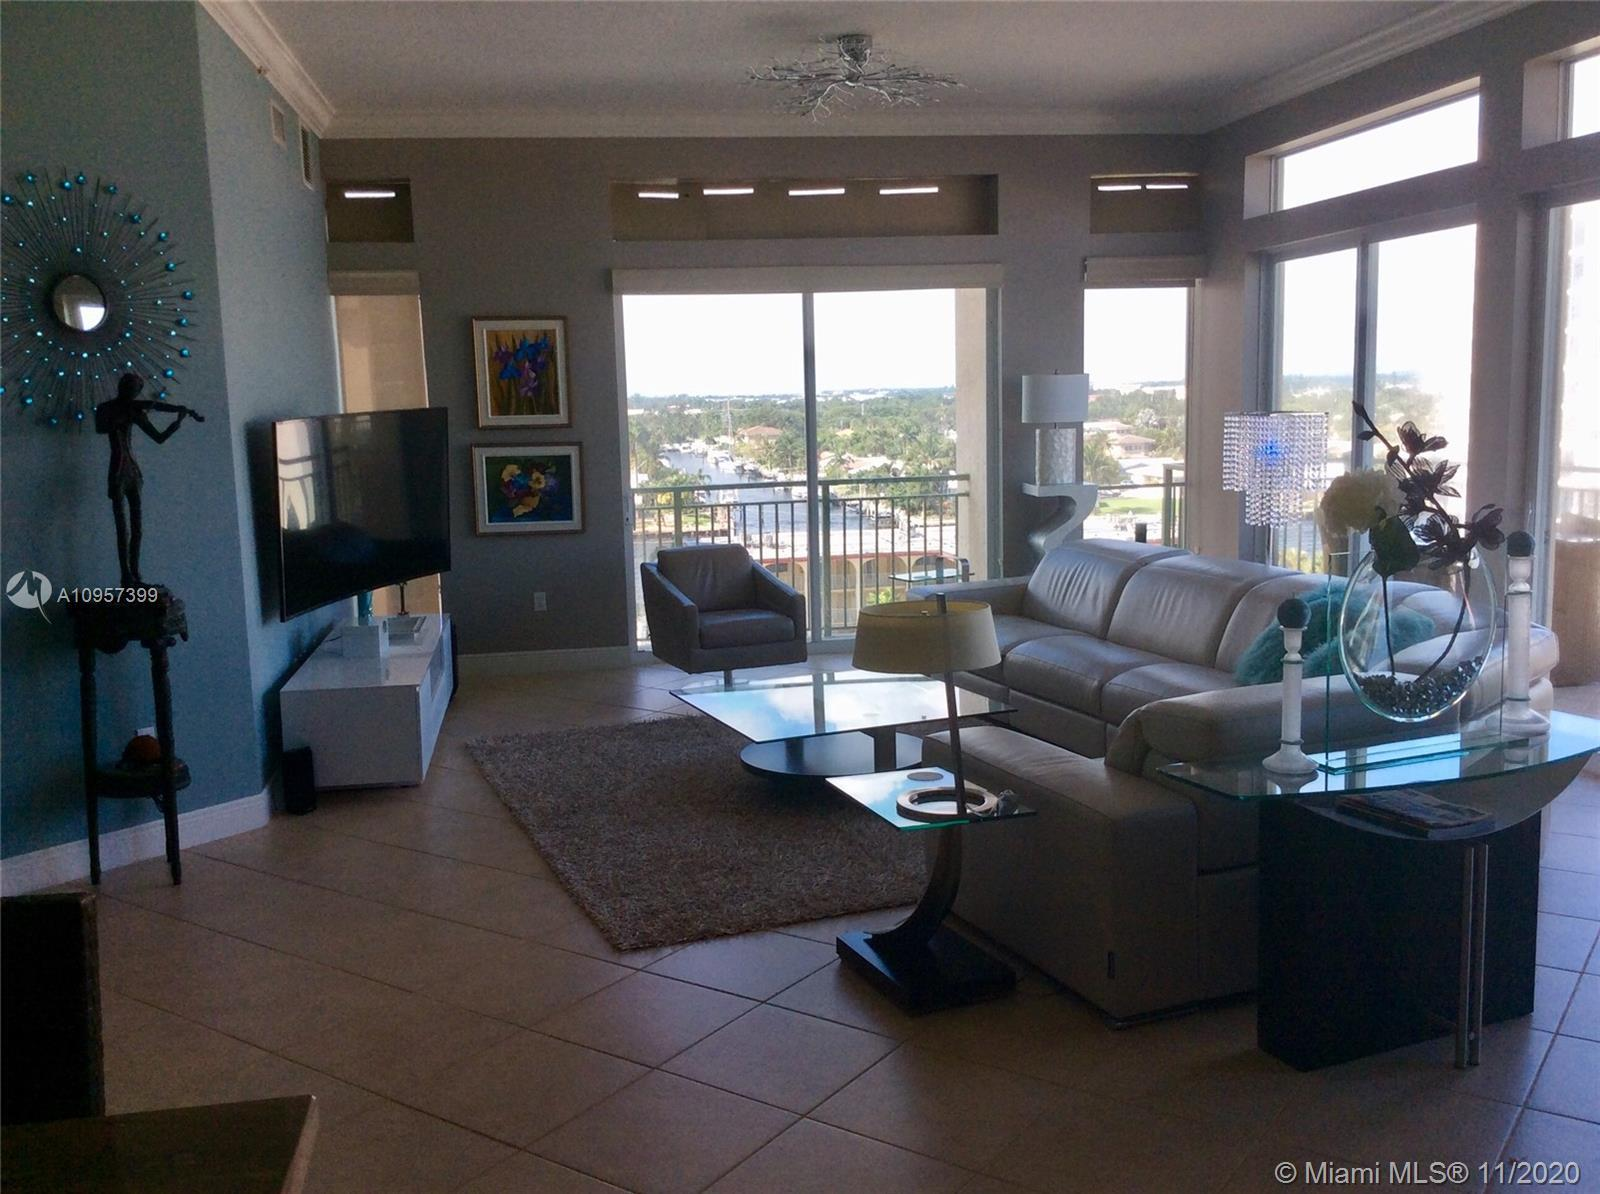 RARELY AVAILABLE SPACIOUS 3 BEDROOM, 3 1/2 BATH PENTHOUSE WITH PRIVATE ELEVATOR ACCESS TO THE UNIT.